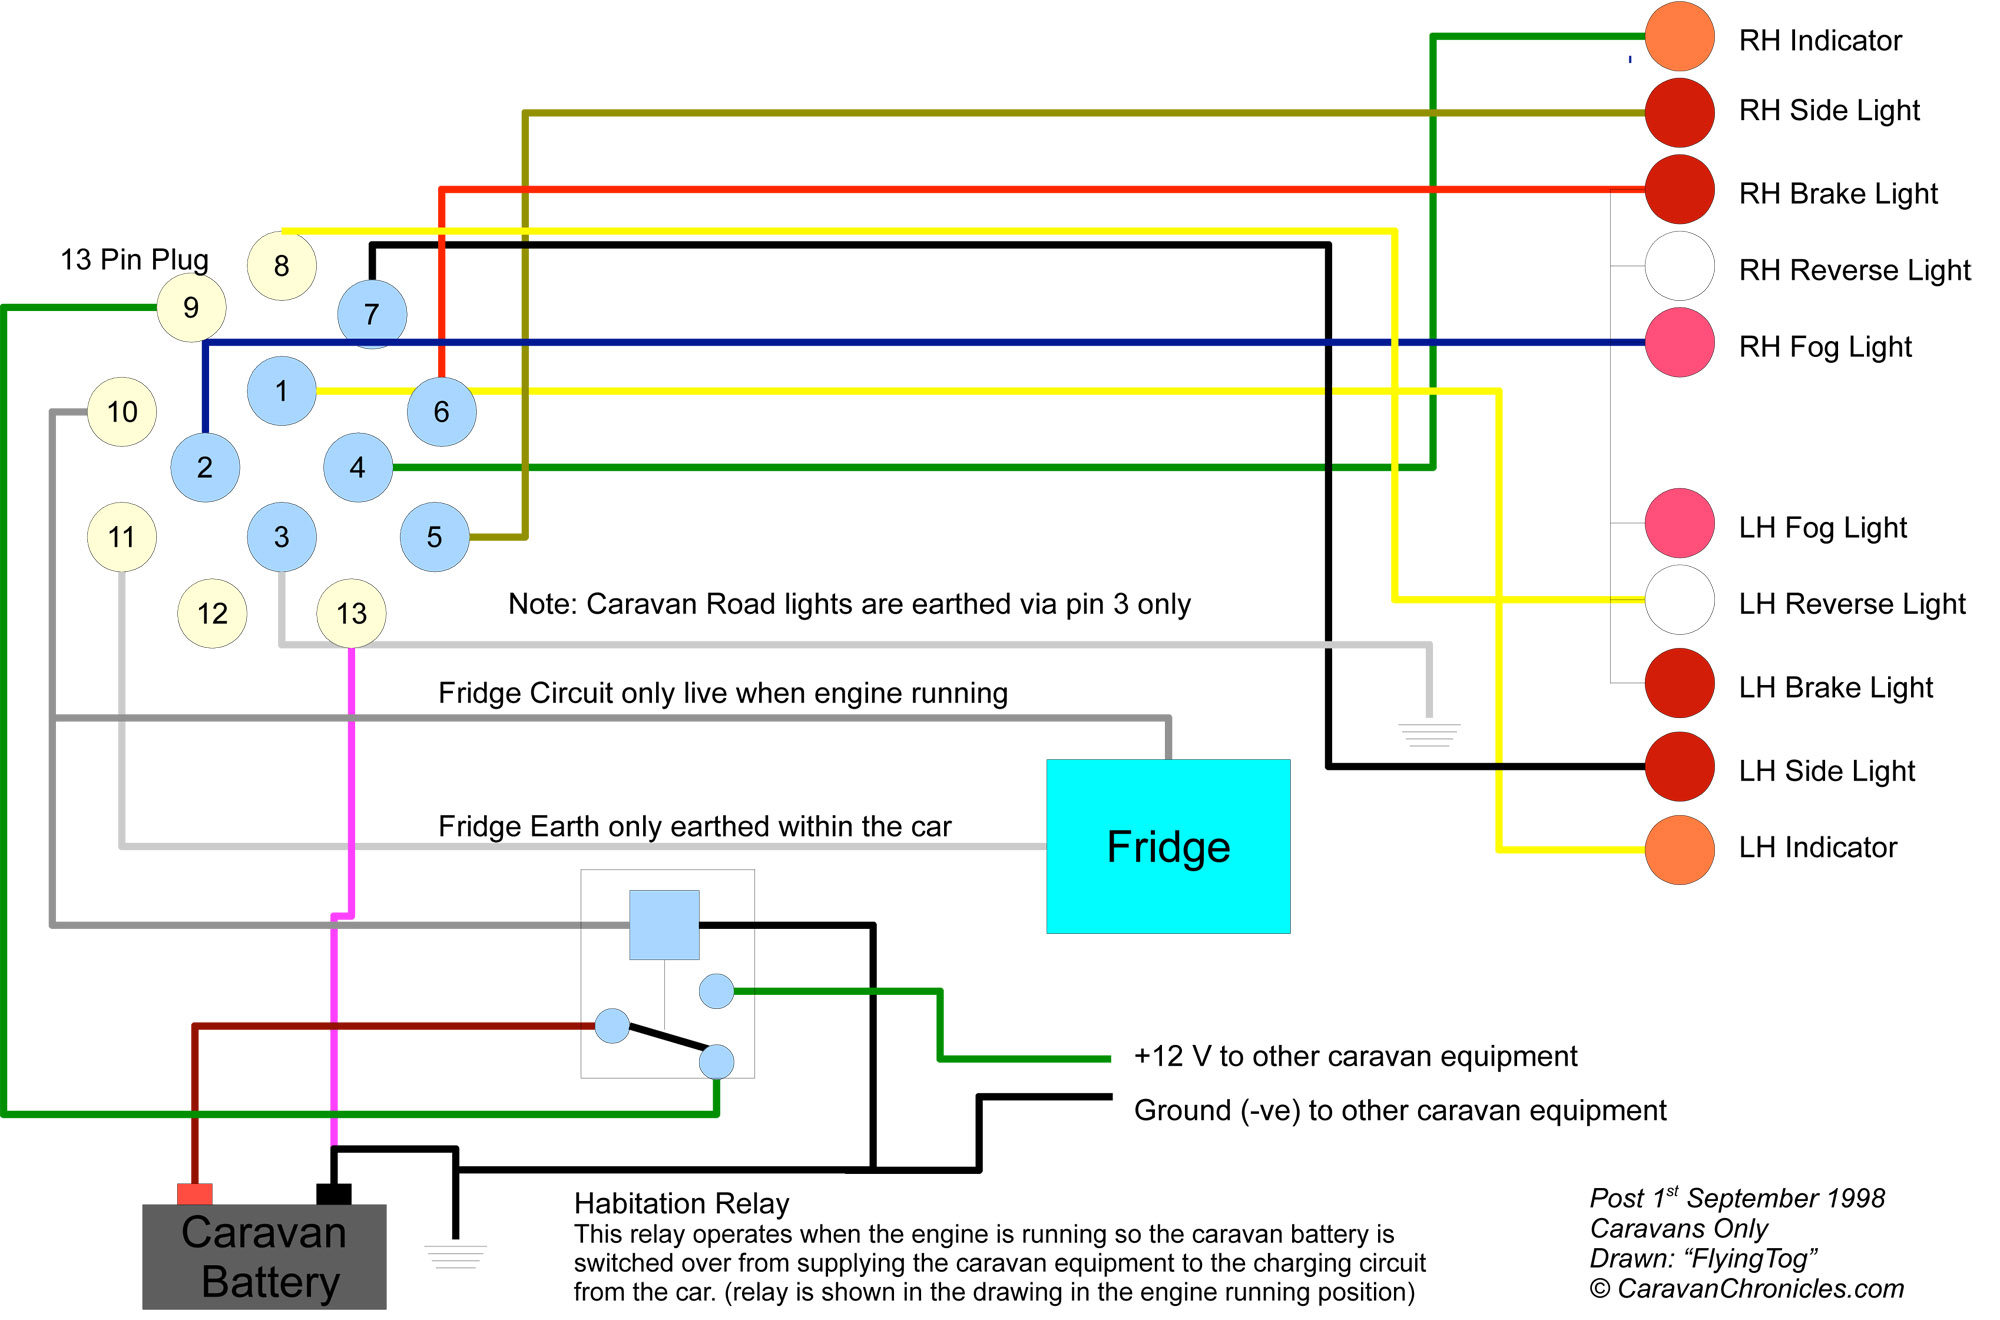 plug socket wiring diagram uk on plug images free download images Plug Socket Diagram plug socket wiring diagram uk on plug socket wiring diagram uk 11 electrical plug wiring diagram 3 pin socket wiring diagram plug socket diagram